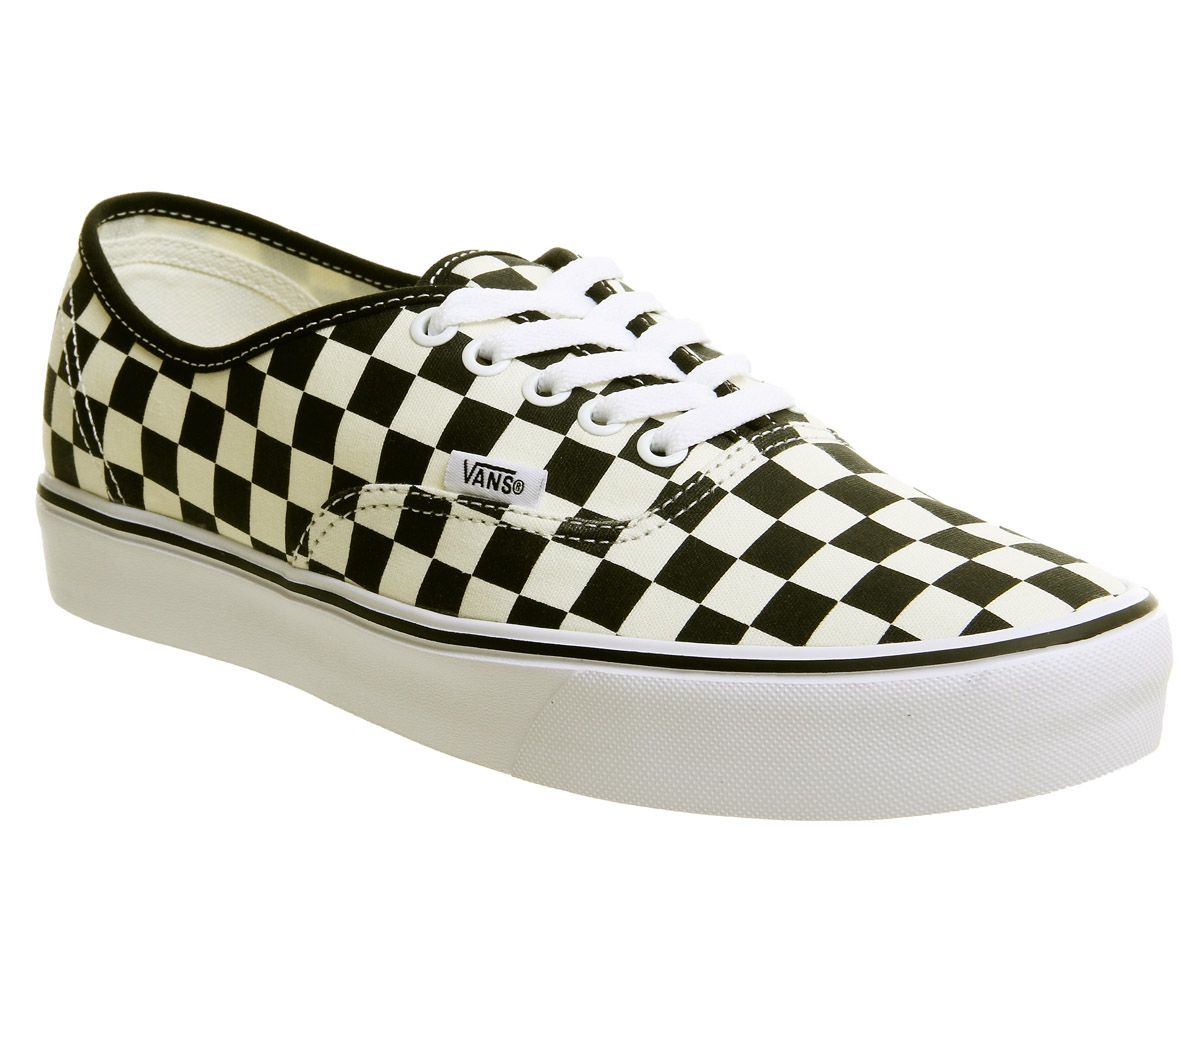 f47f28a3b4 Vans Authentic Lite Trainers Black White Checker - Hers trainers